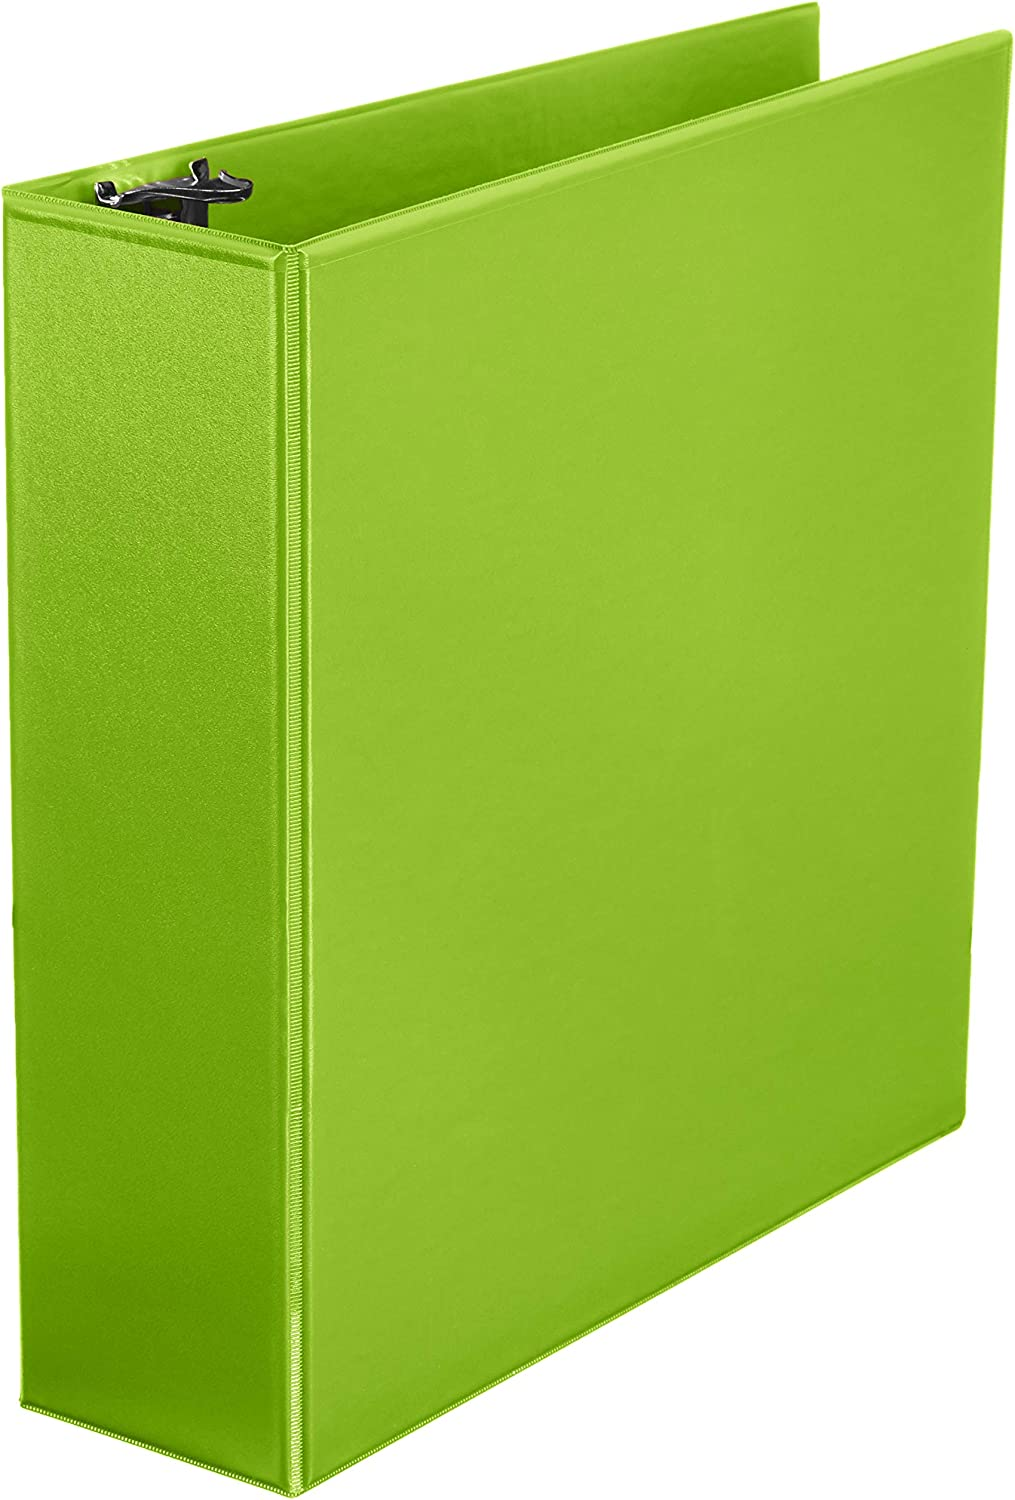 AmazonBasics 3-Inch Round Ring Binder, Green, View, 12-Pack